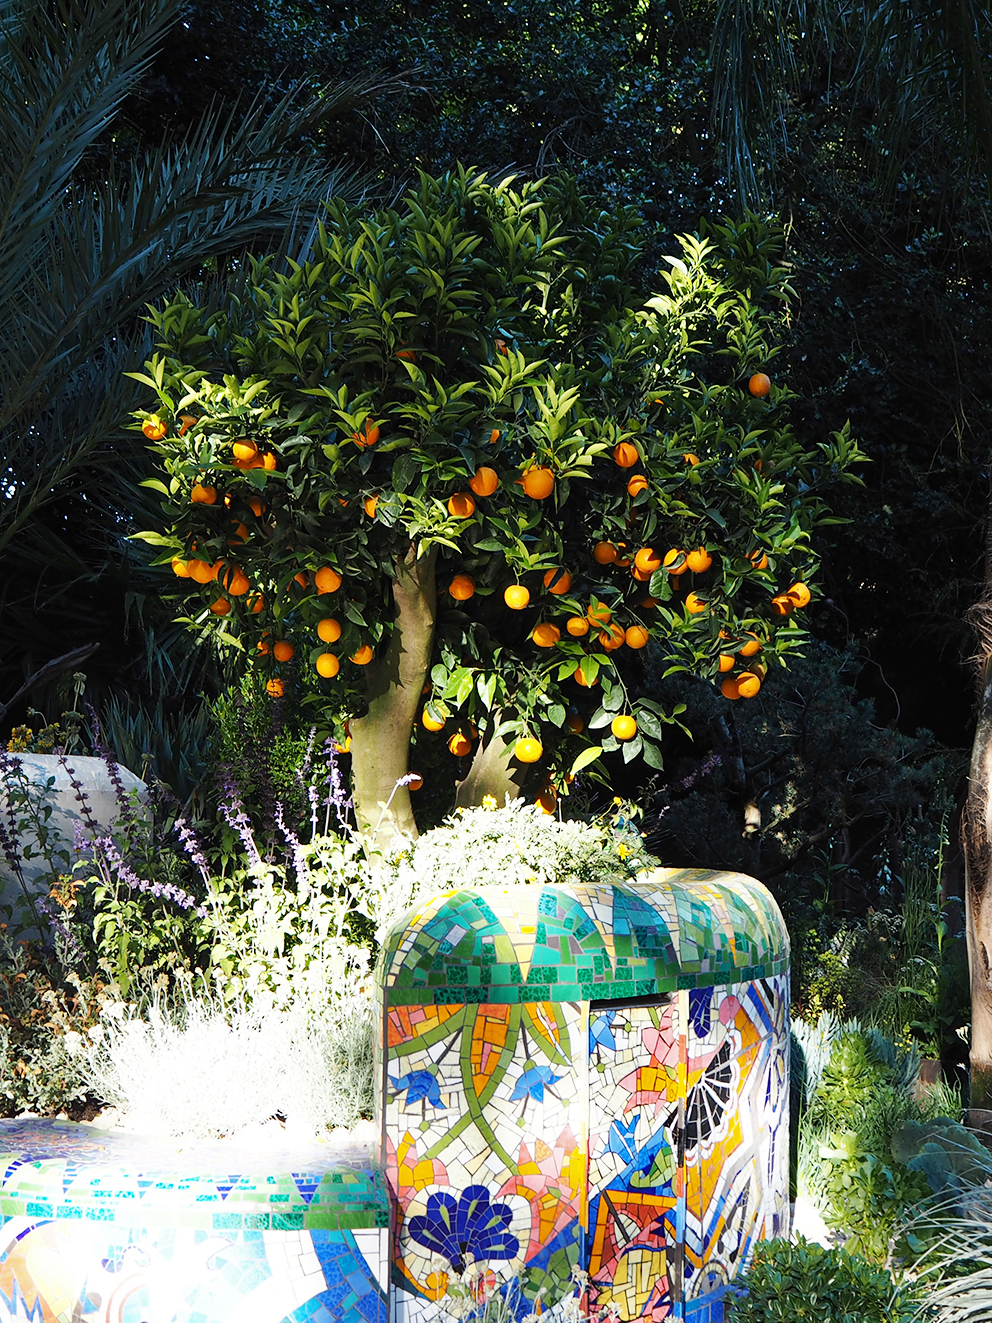 French For Pineapple Blog - RHS Chelsea Flower Show 2017 - Sculptural Orange Tree and Mosaic Wall